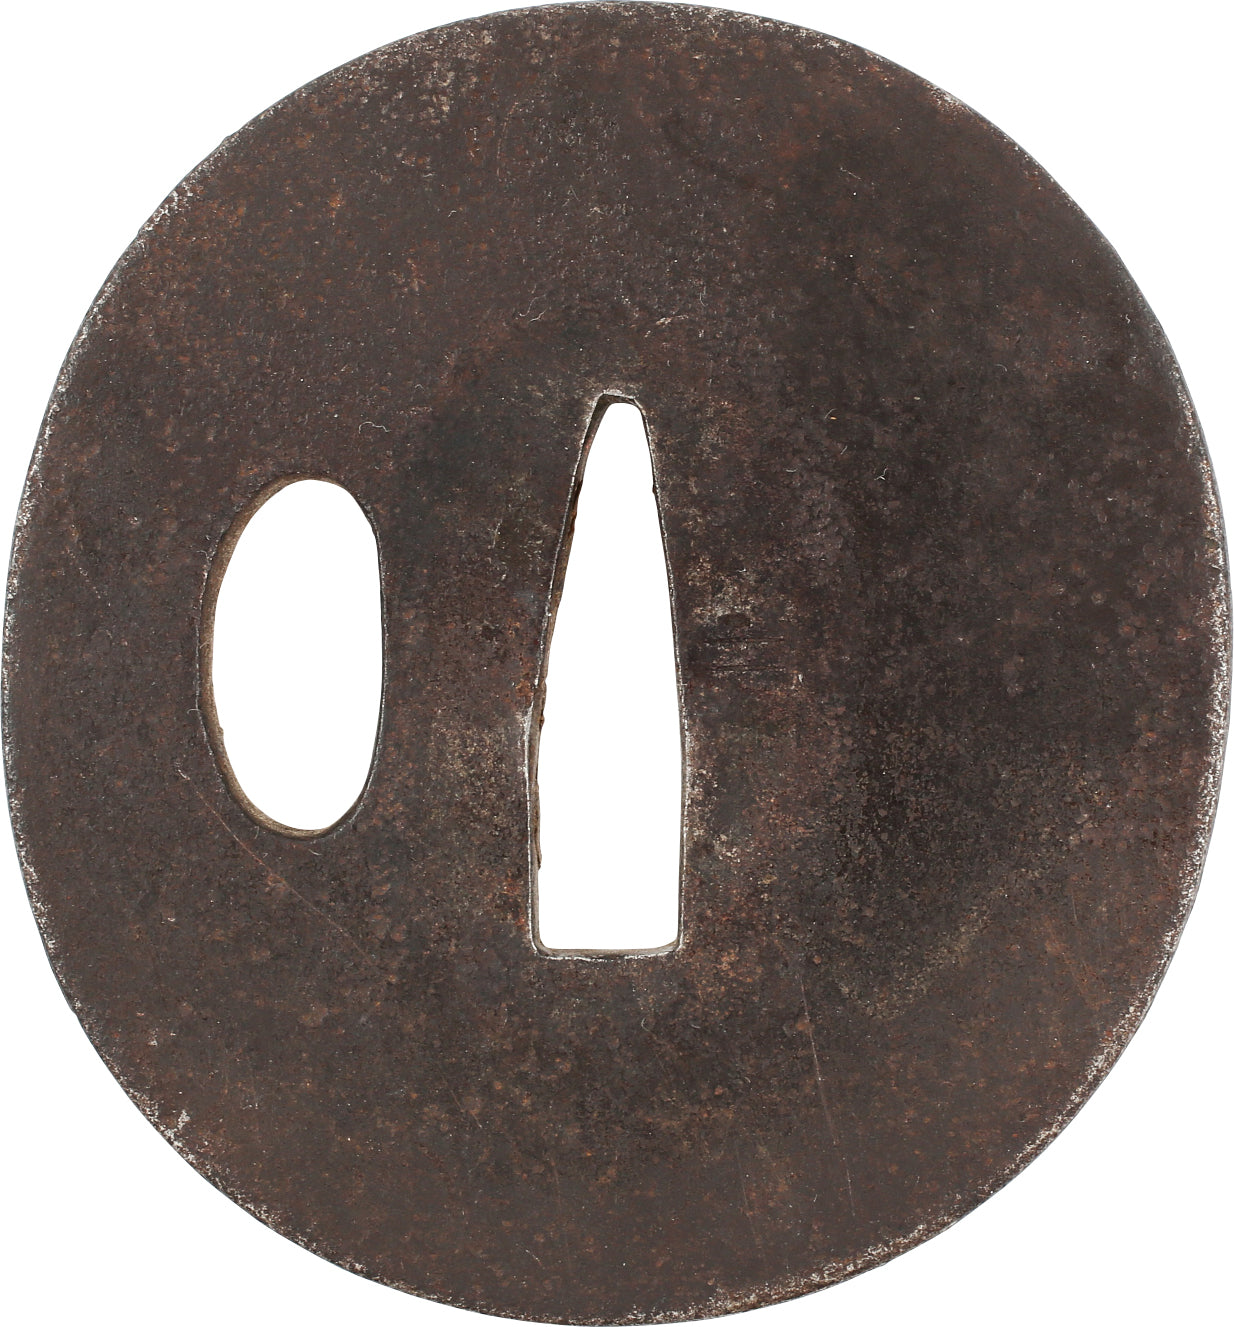 JAPANESE SWORD GUARD, TSUBA, EDO PERIOD, 18TH-19TH CENTURY